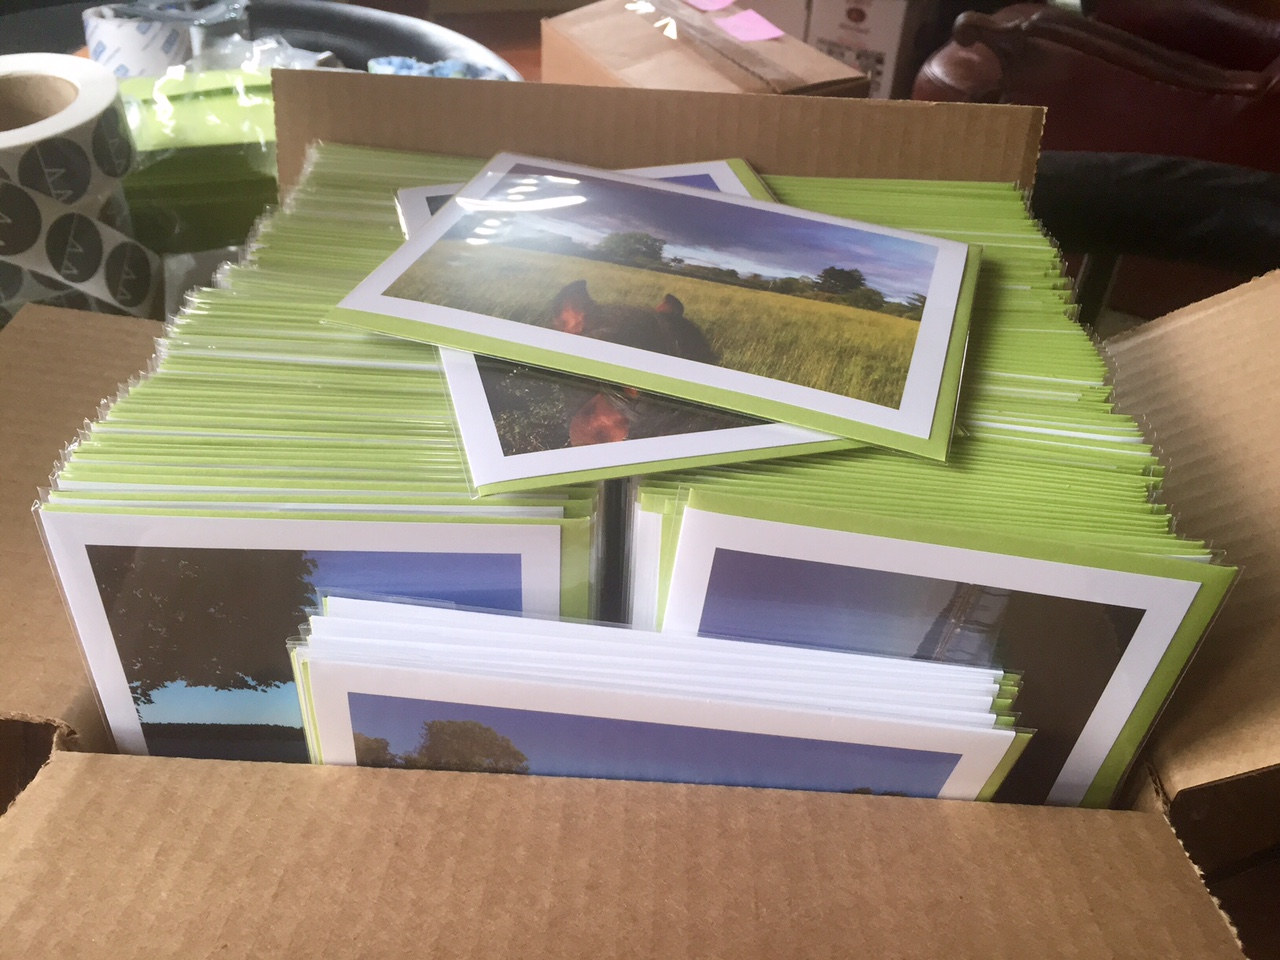 Spent my yesterday afternoon packaging over 250 Life Between the Ears cards for the competitor swag bags at Region 6 Dressage Championships at Devonwood. Will be fun to get them out into the world.   Good luck to my friends   Erin Peterson  ,  Anne-Lise Dragoy Brooks  ,  Audrey Zehnder  ,  Suzanne Meehan Beaudoin  ,  Kimry Jelen  ,  Shana Blum  ,  Donna Baxter  that are riding and/or working, and I look forward to meeting a few more FB friends in person here too! See you in a few weeks!